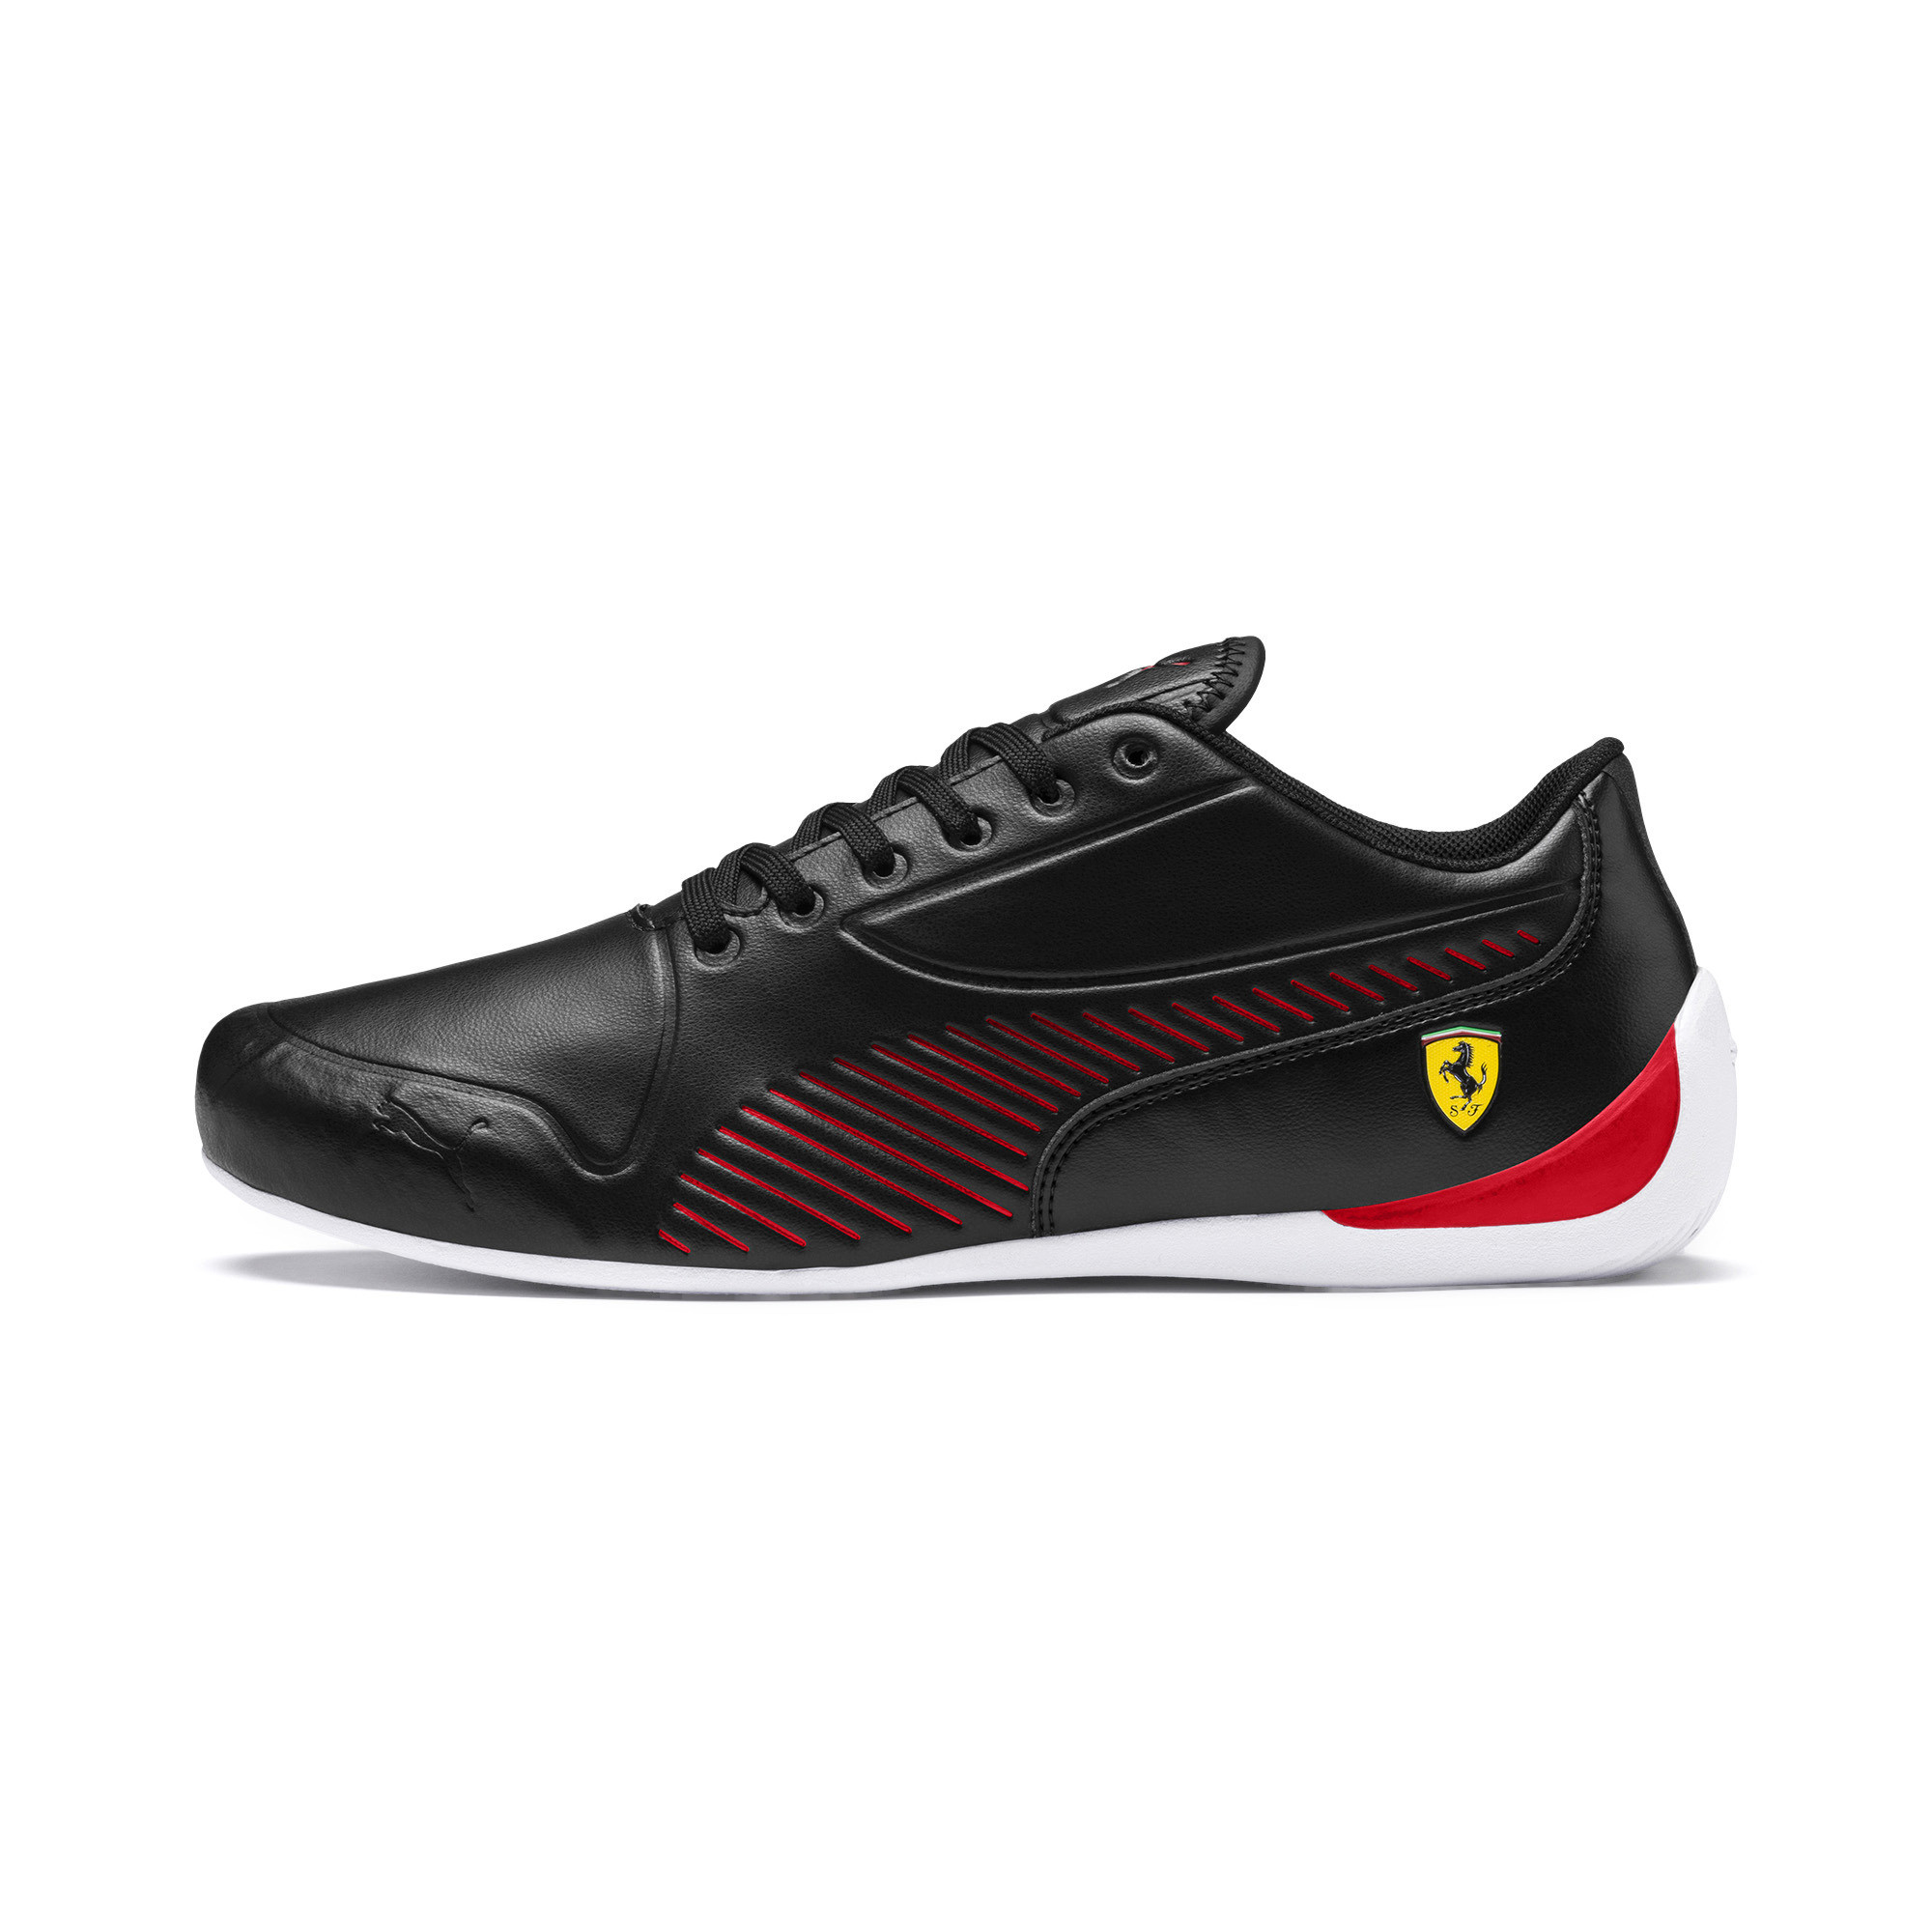 PUMA-Men-039-s-Scuderia-Ferrari-Drift-Cat-7S-Ultra-Shoes thumbnail 4